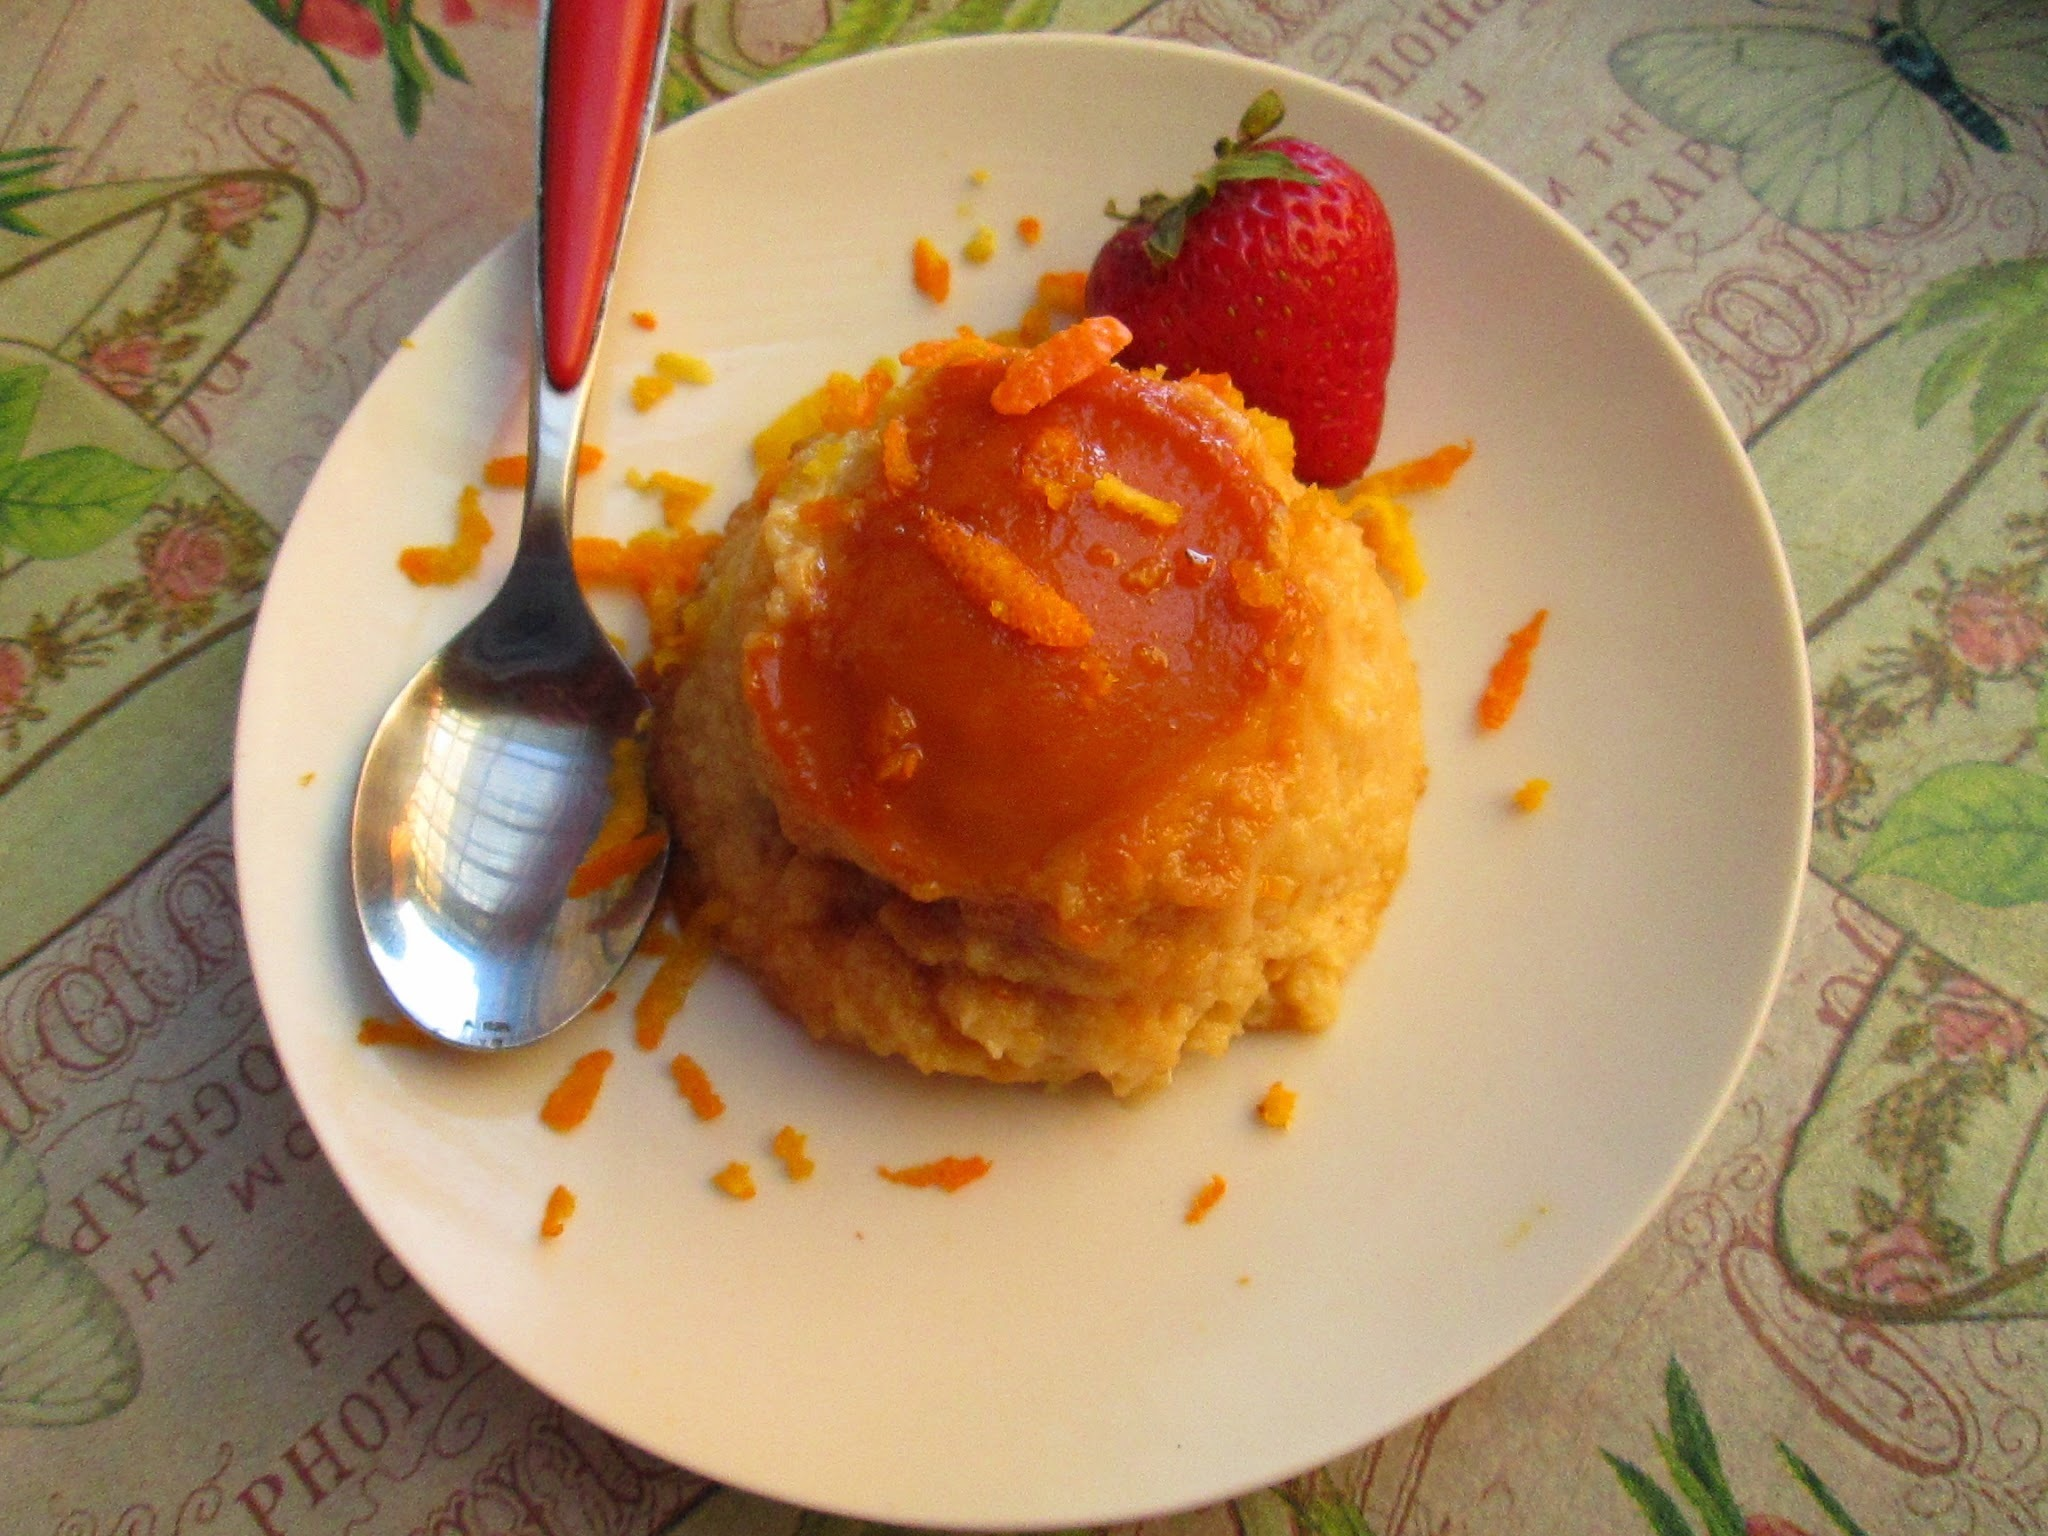 Mango and orange  flan (Flan de mango y naranja )